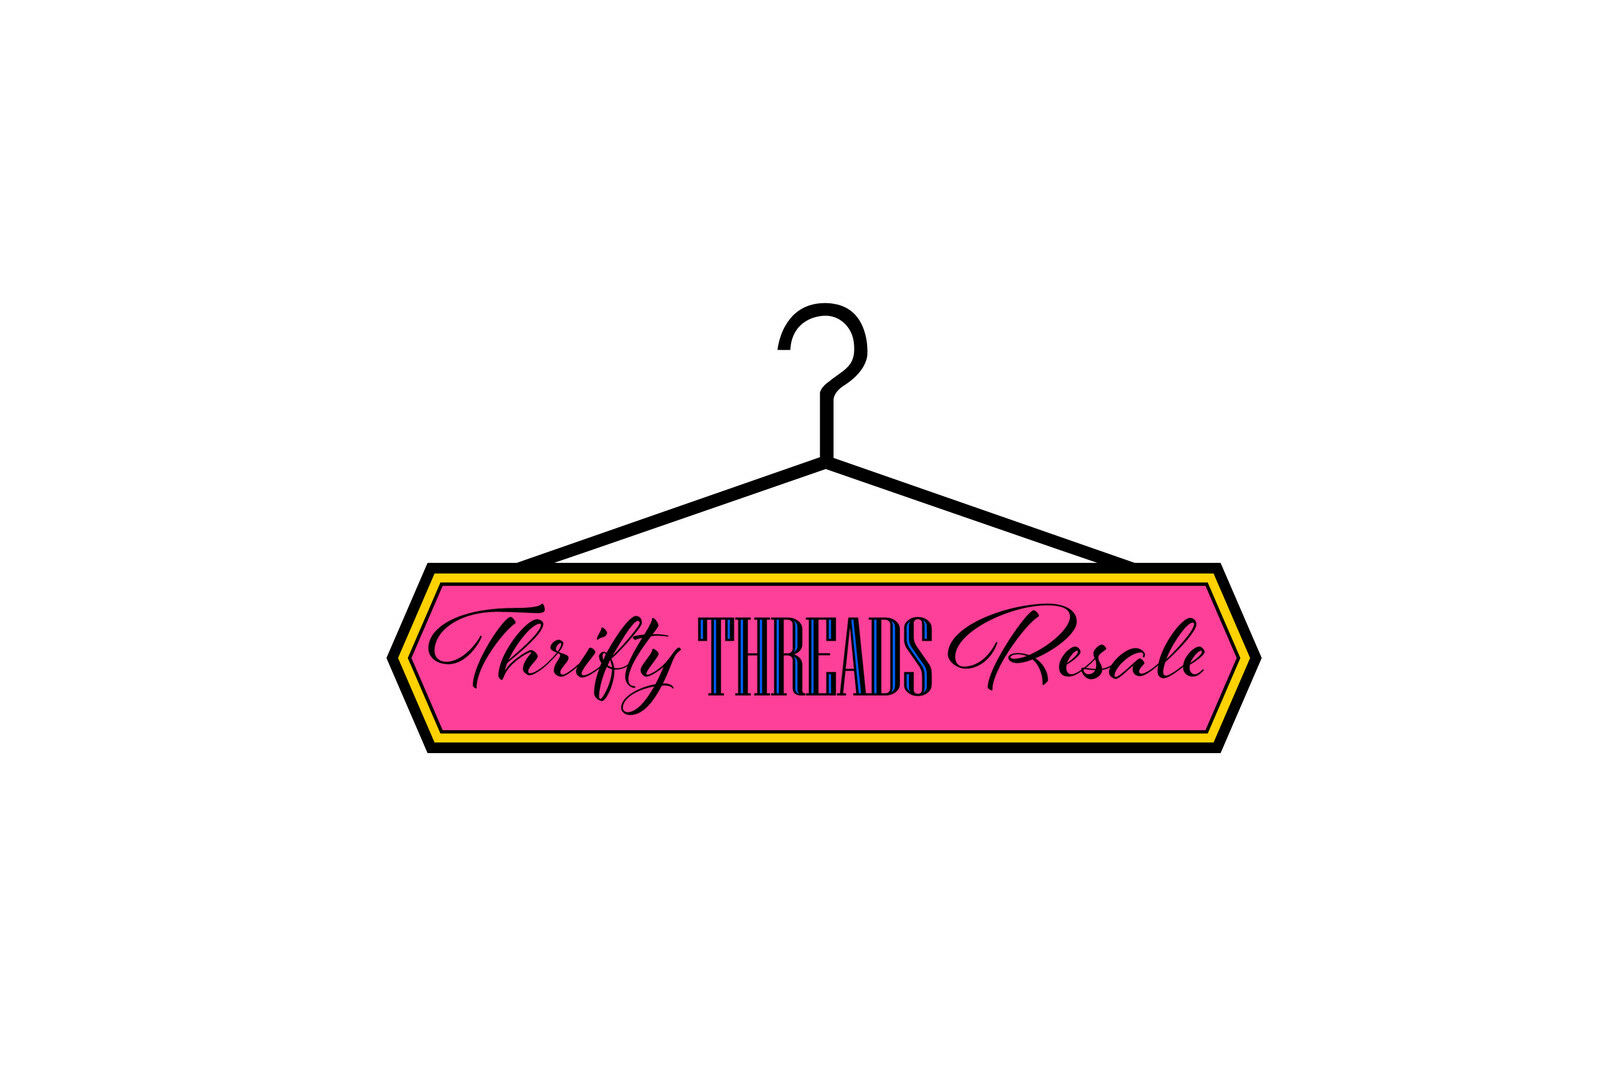 Thrifty Threads Resale